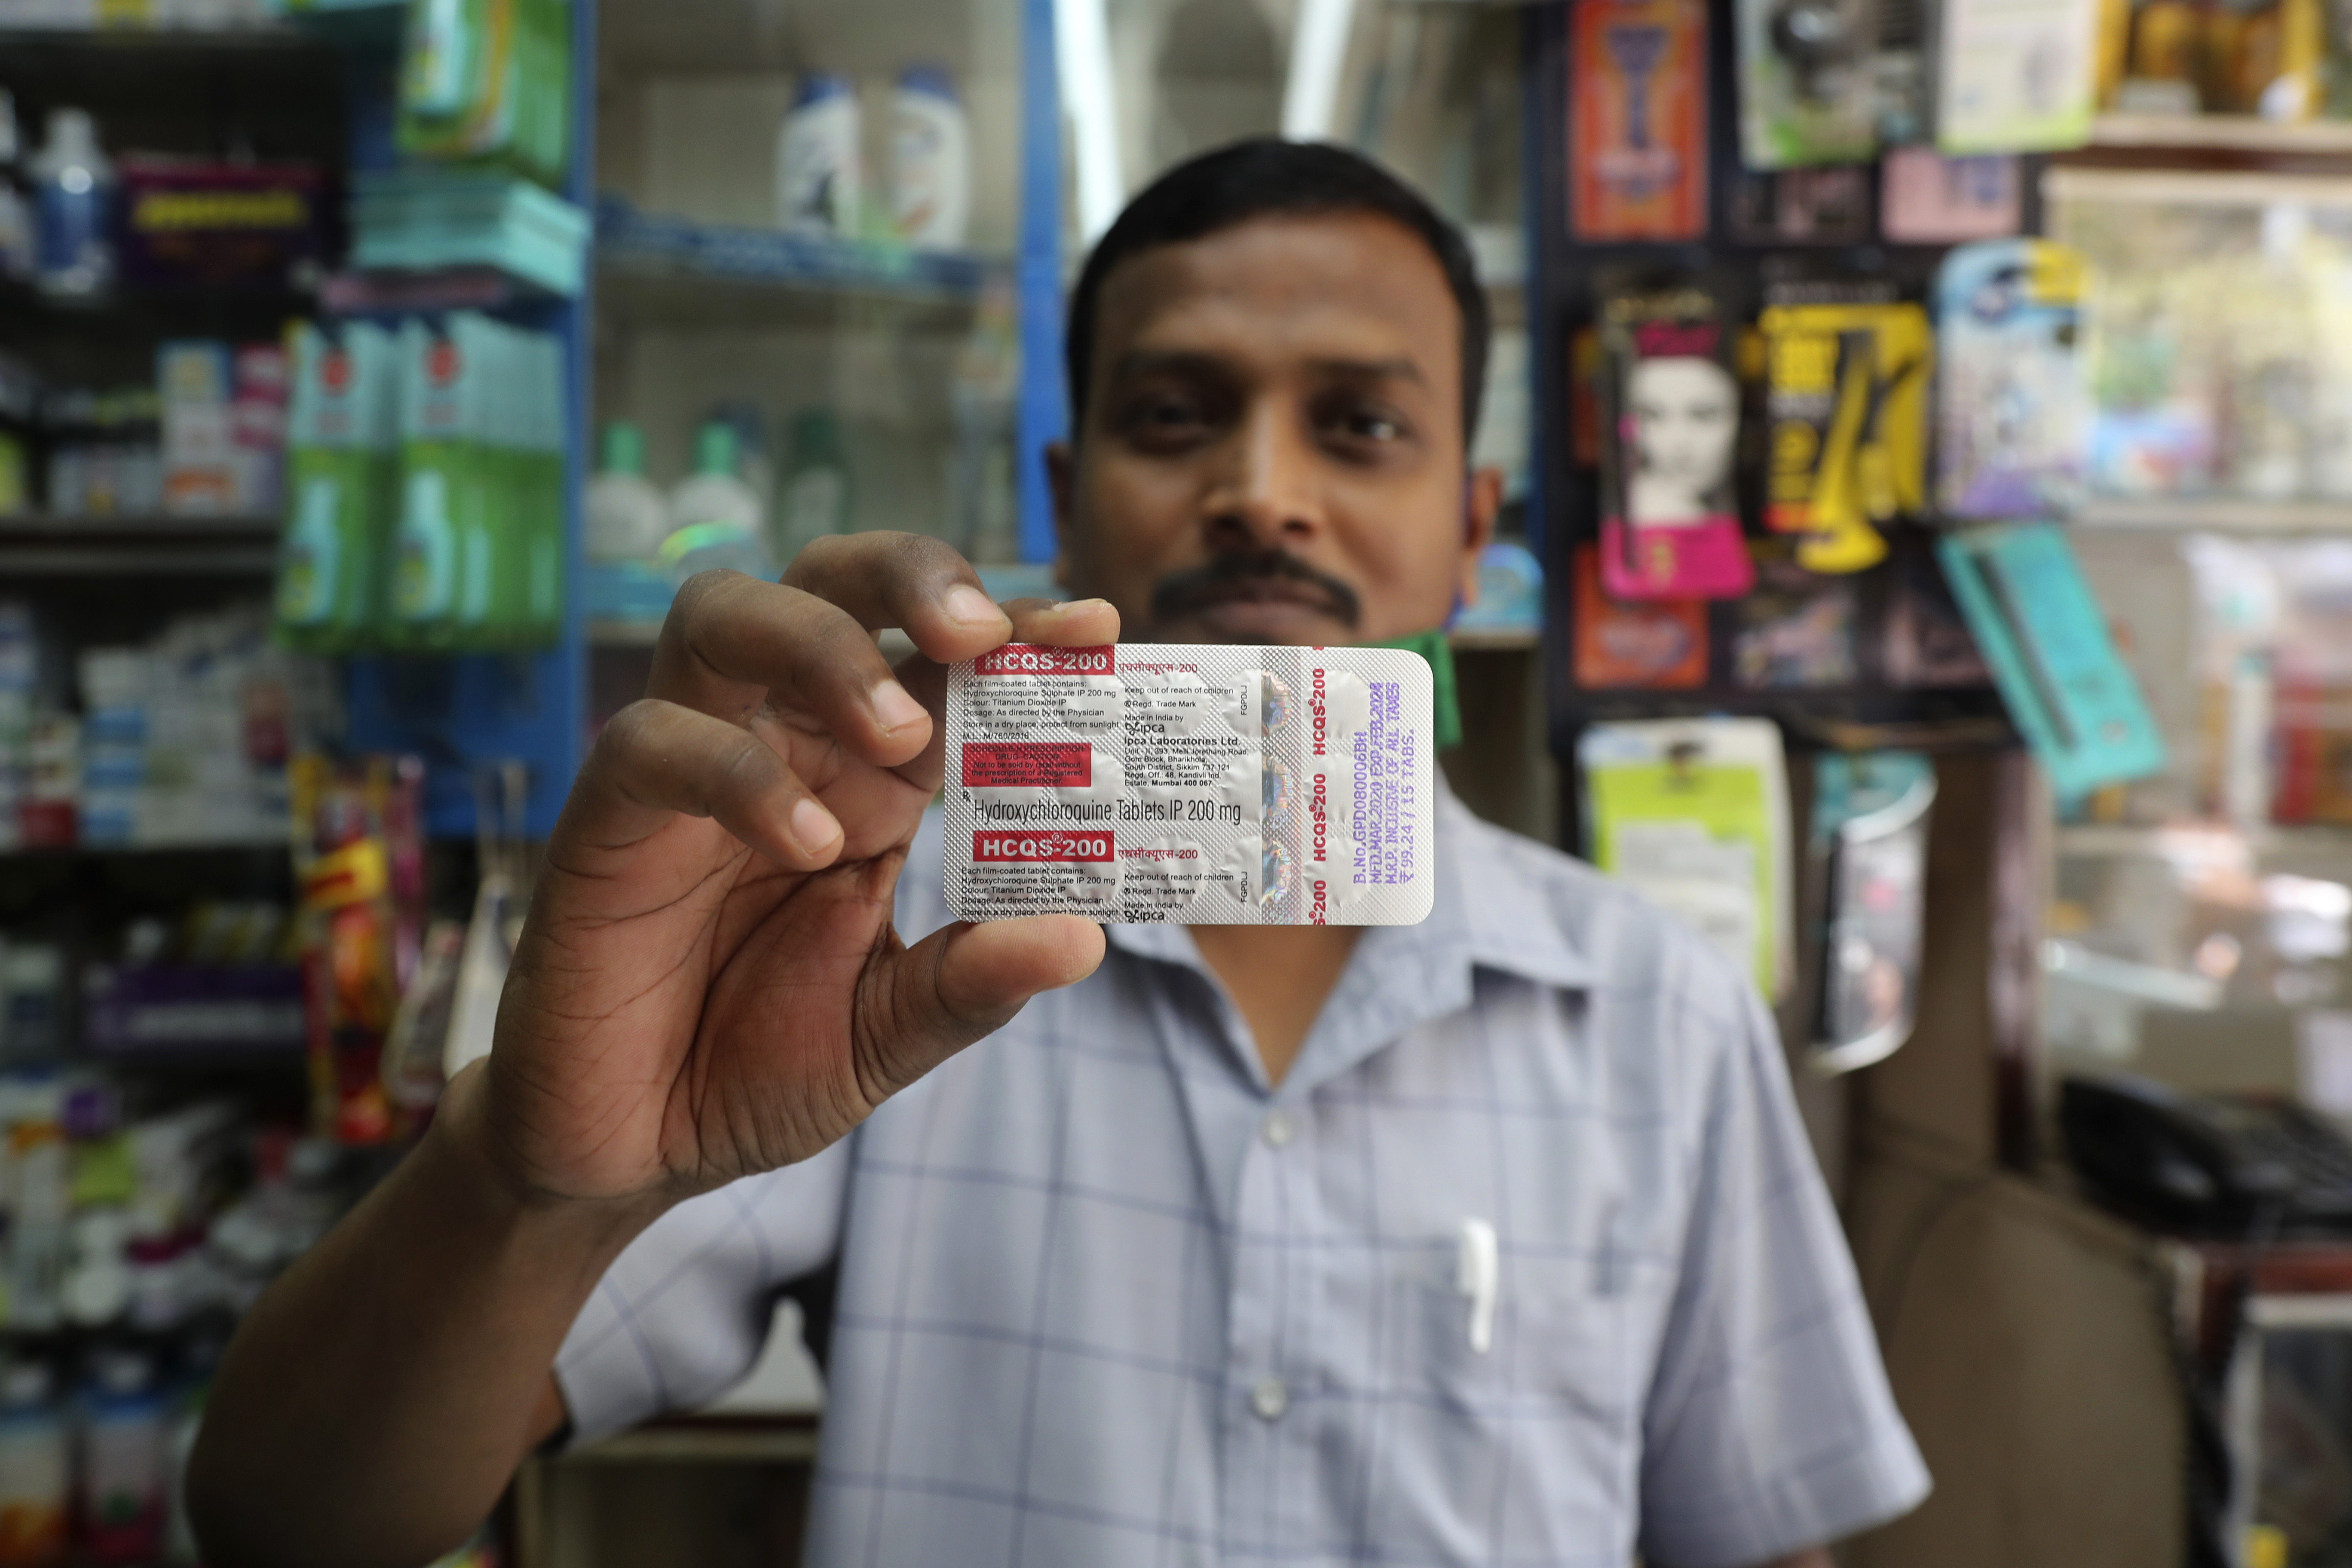 A chemist displays hydroxychloroquine tablets in Mumbai, India, Tuesday, May 19, 2020. President Donald Trumpu2019s declaration that he was taking the antimalarial drug of dubious effectiveness to help fend off the coronavirus will be welcomed in India. Trump's previous endorsement of hydroxychloroquine catalyzed a tremendous shift in the South Asian country, spurring the worldu2019s largest producer of the drug to make much more of it, prescribe it for front-line health workers treating cases of the coronavirus and deploy it as a diplomatic tool, despite mounting evidence against using the drug for COVID-19. (AP Photo/Rafiq Maqbool)